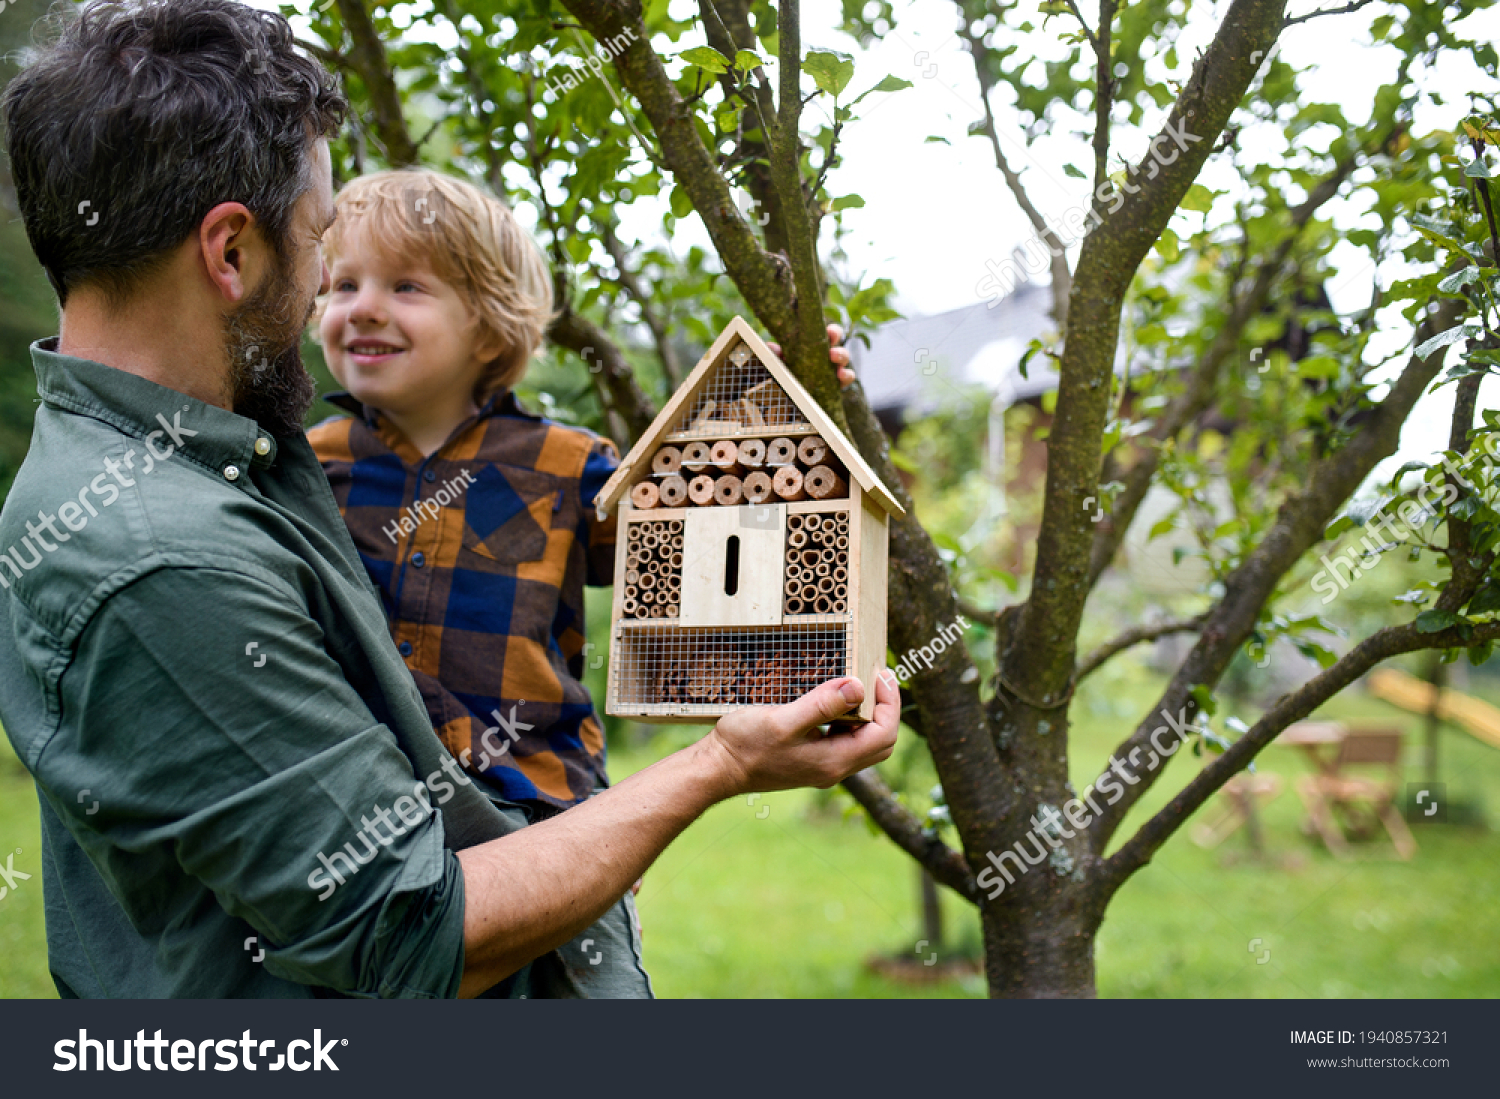 Small boy with father holding bug and insect hotel in garden, sustainable lifestyle. #1940857321